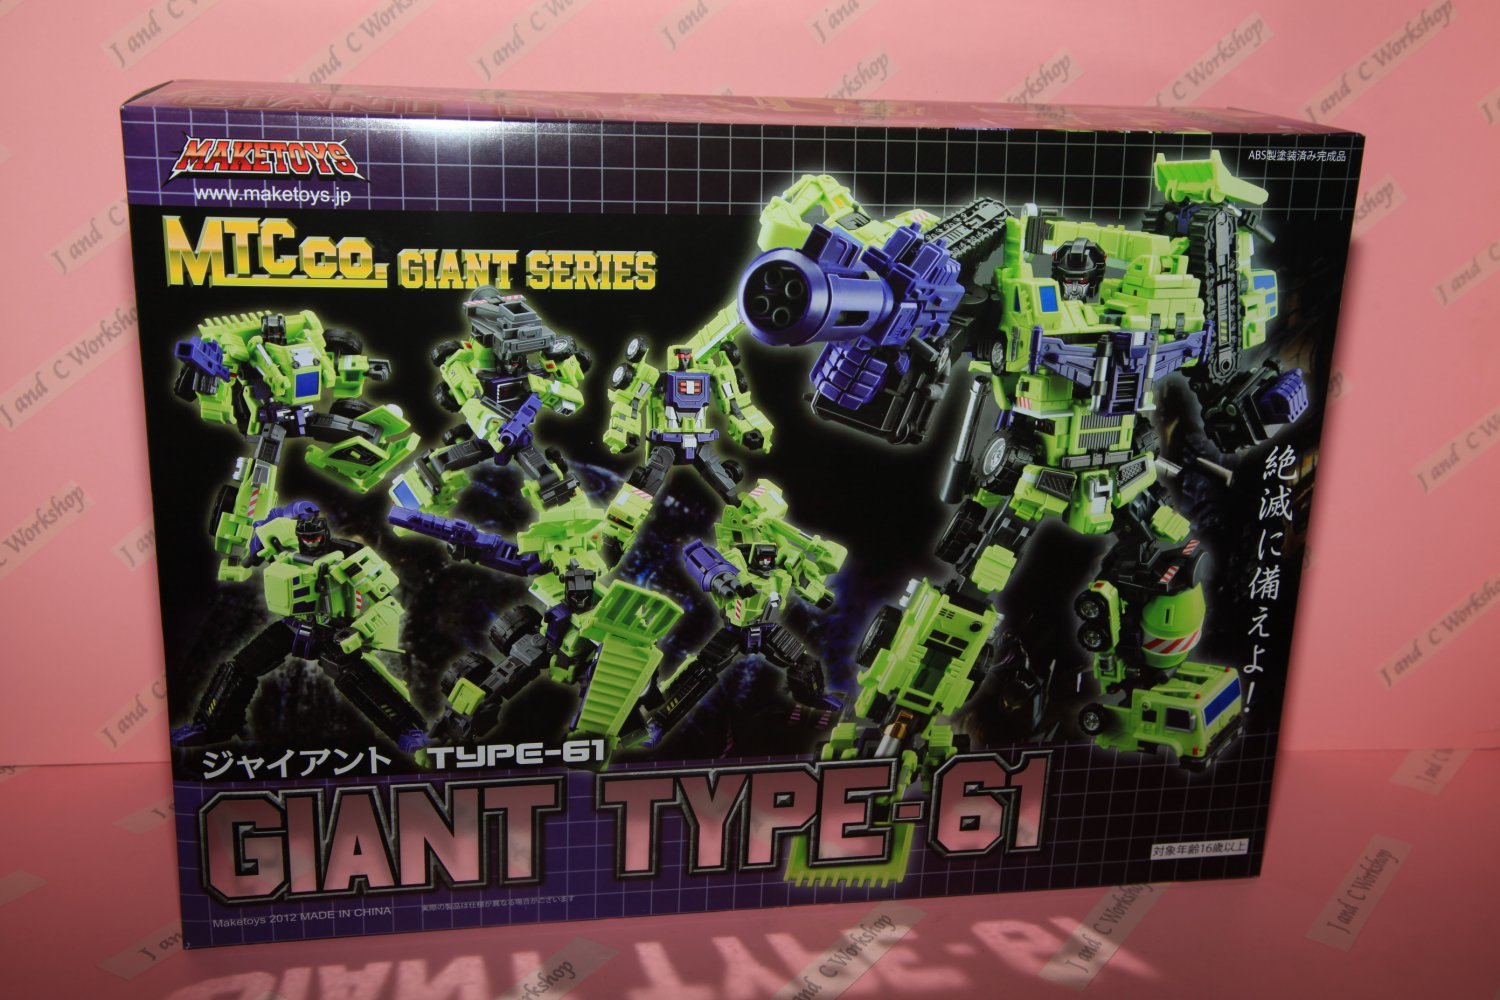 Transformers Maketoys Type 61 AKA Green Giant Devastator Constructicons Full Set Japan Version